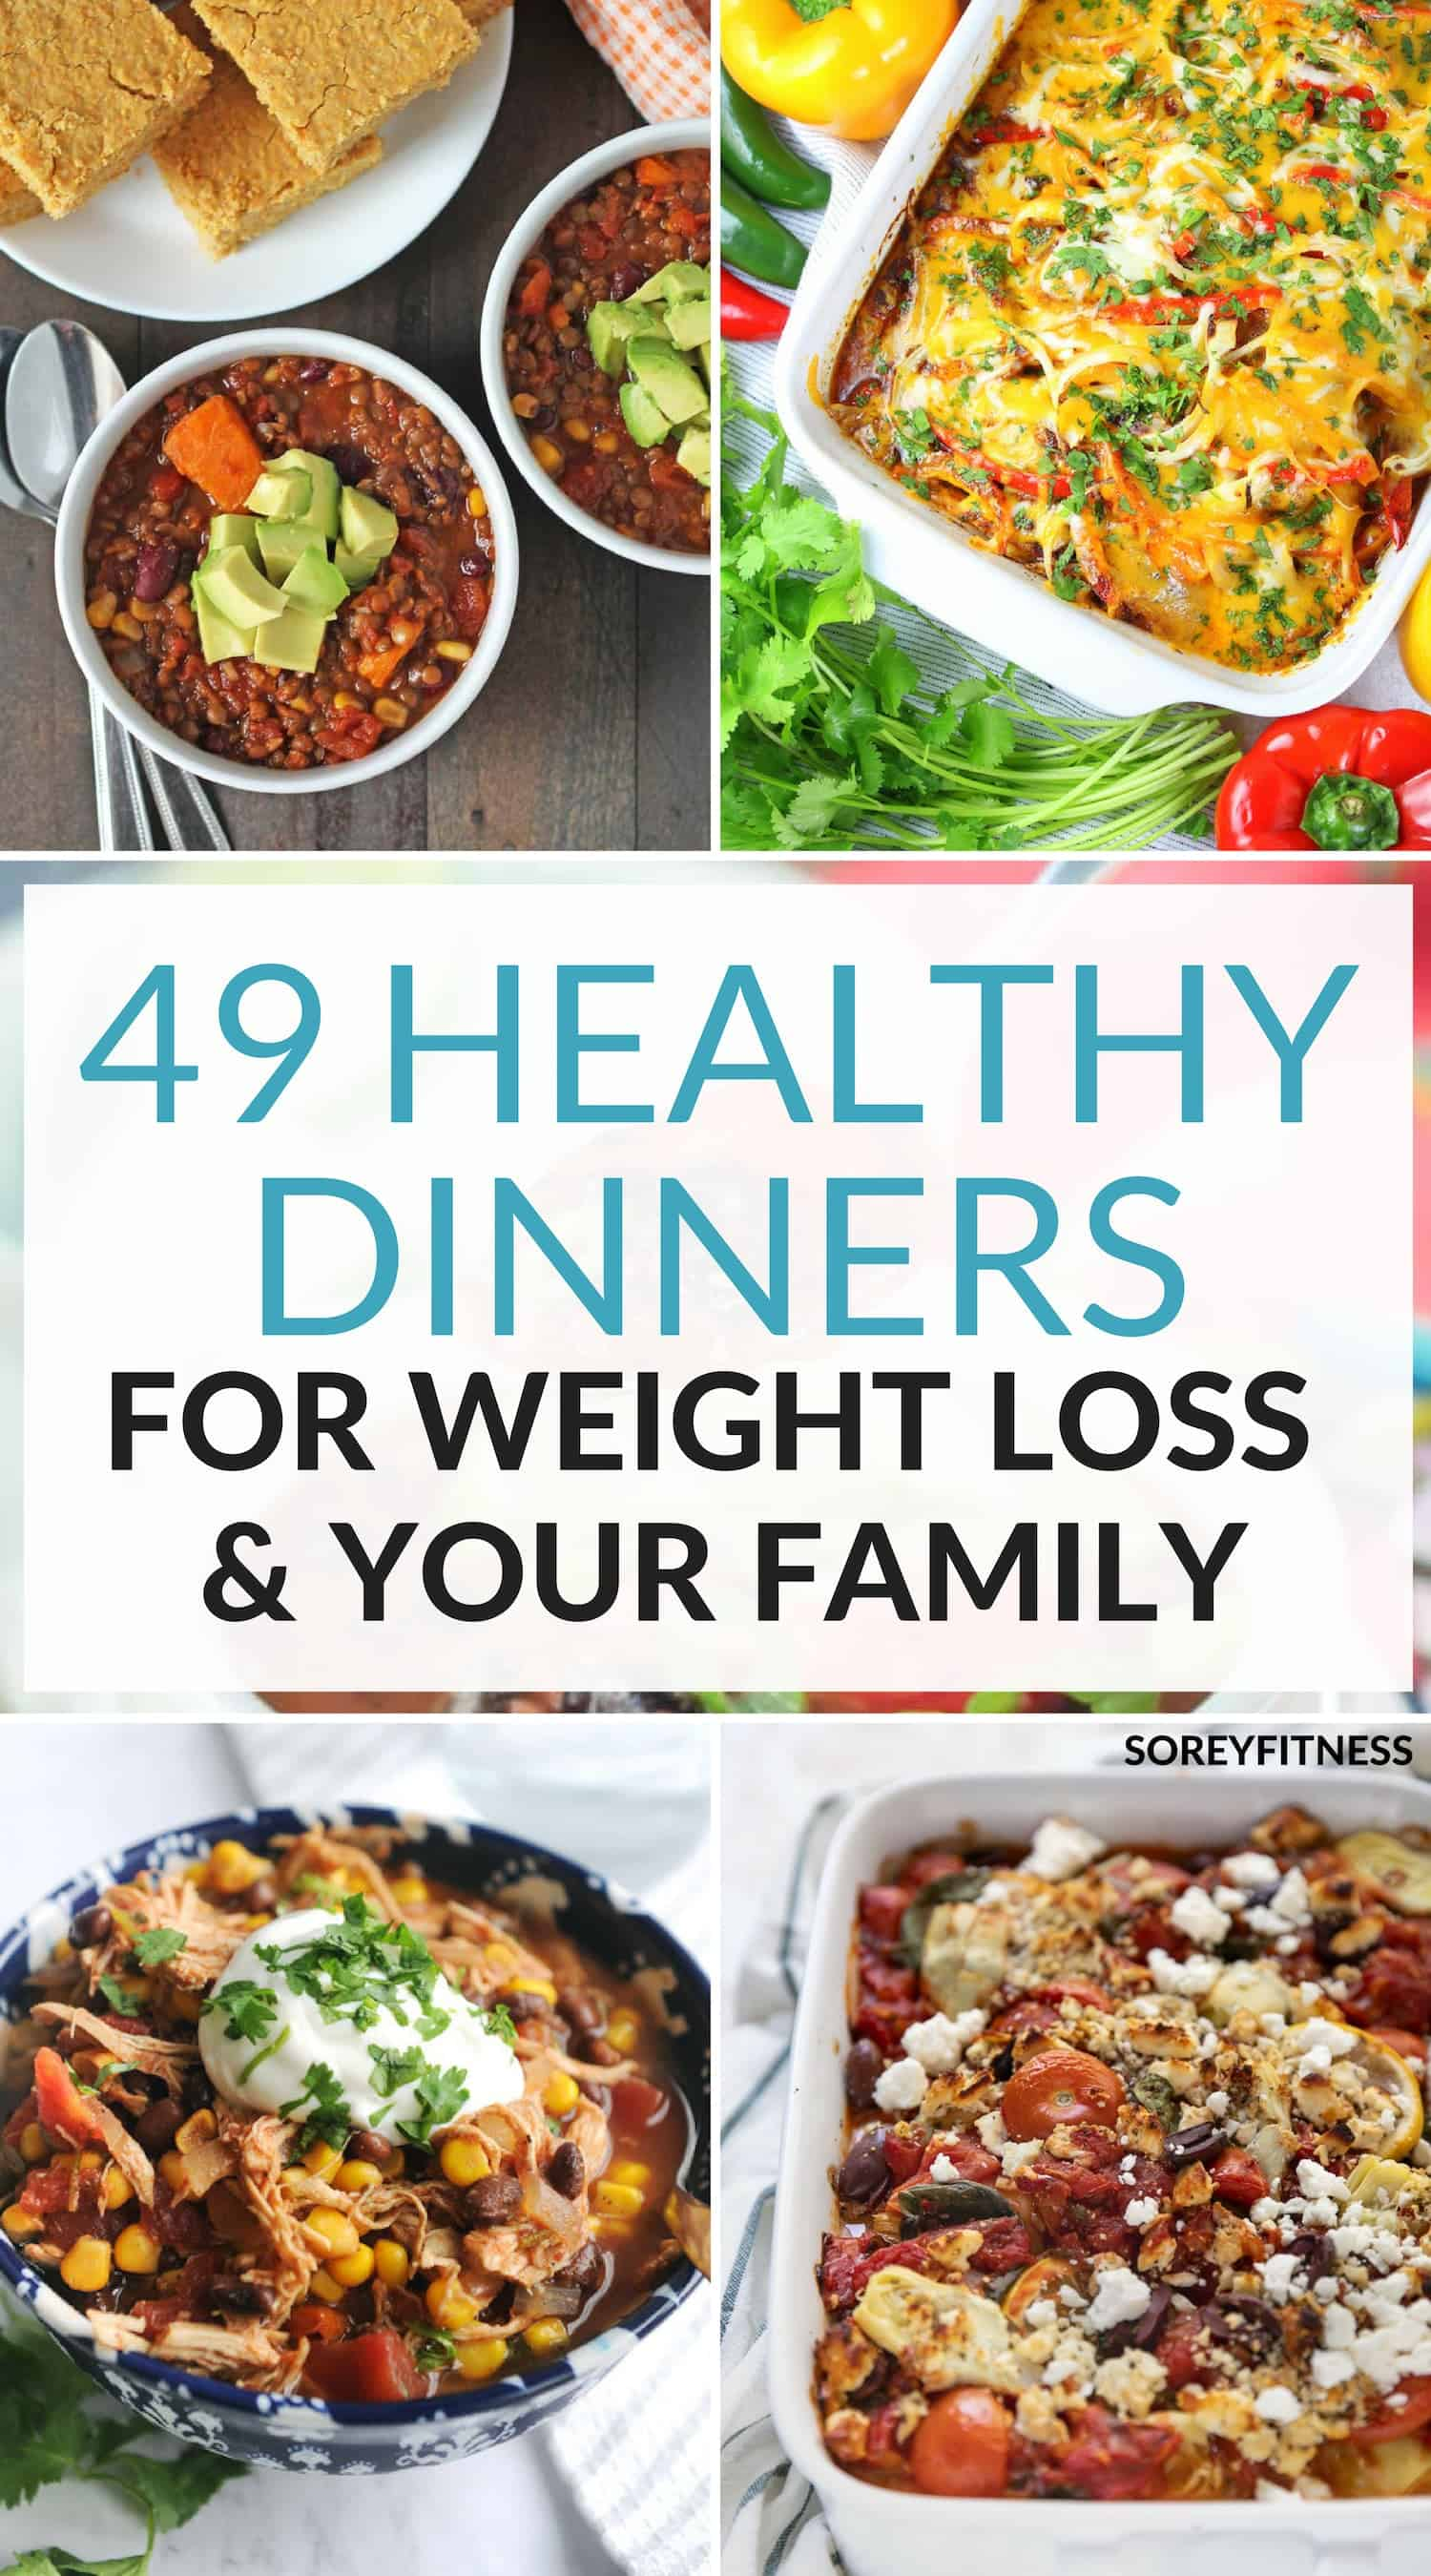 Healthy Dinner Ideas for Weight Loss and Your Family